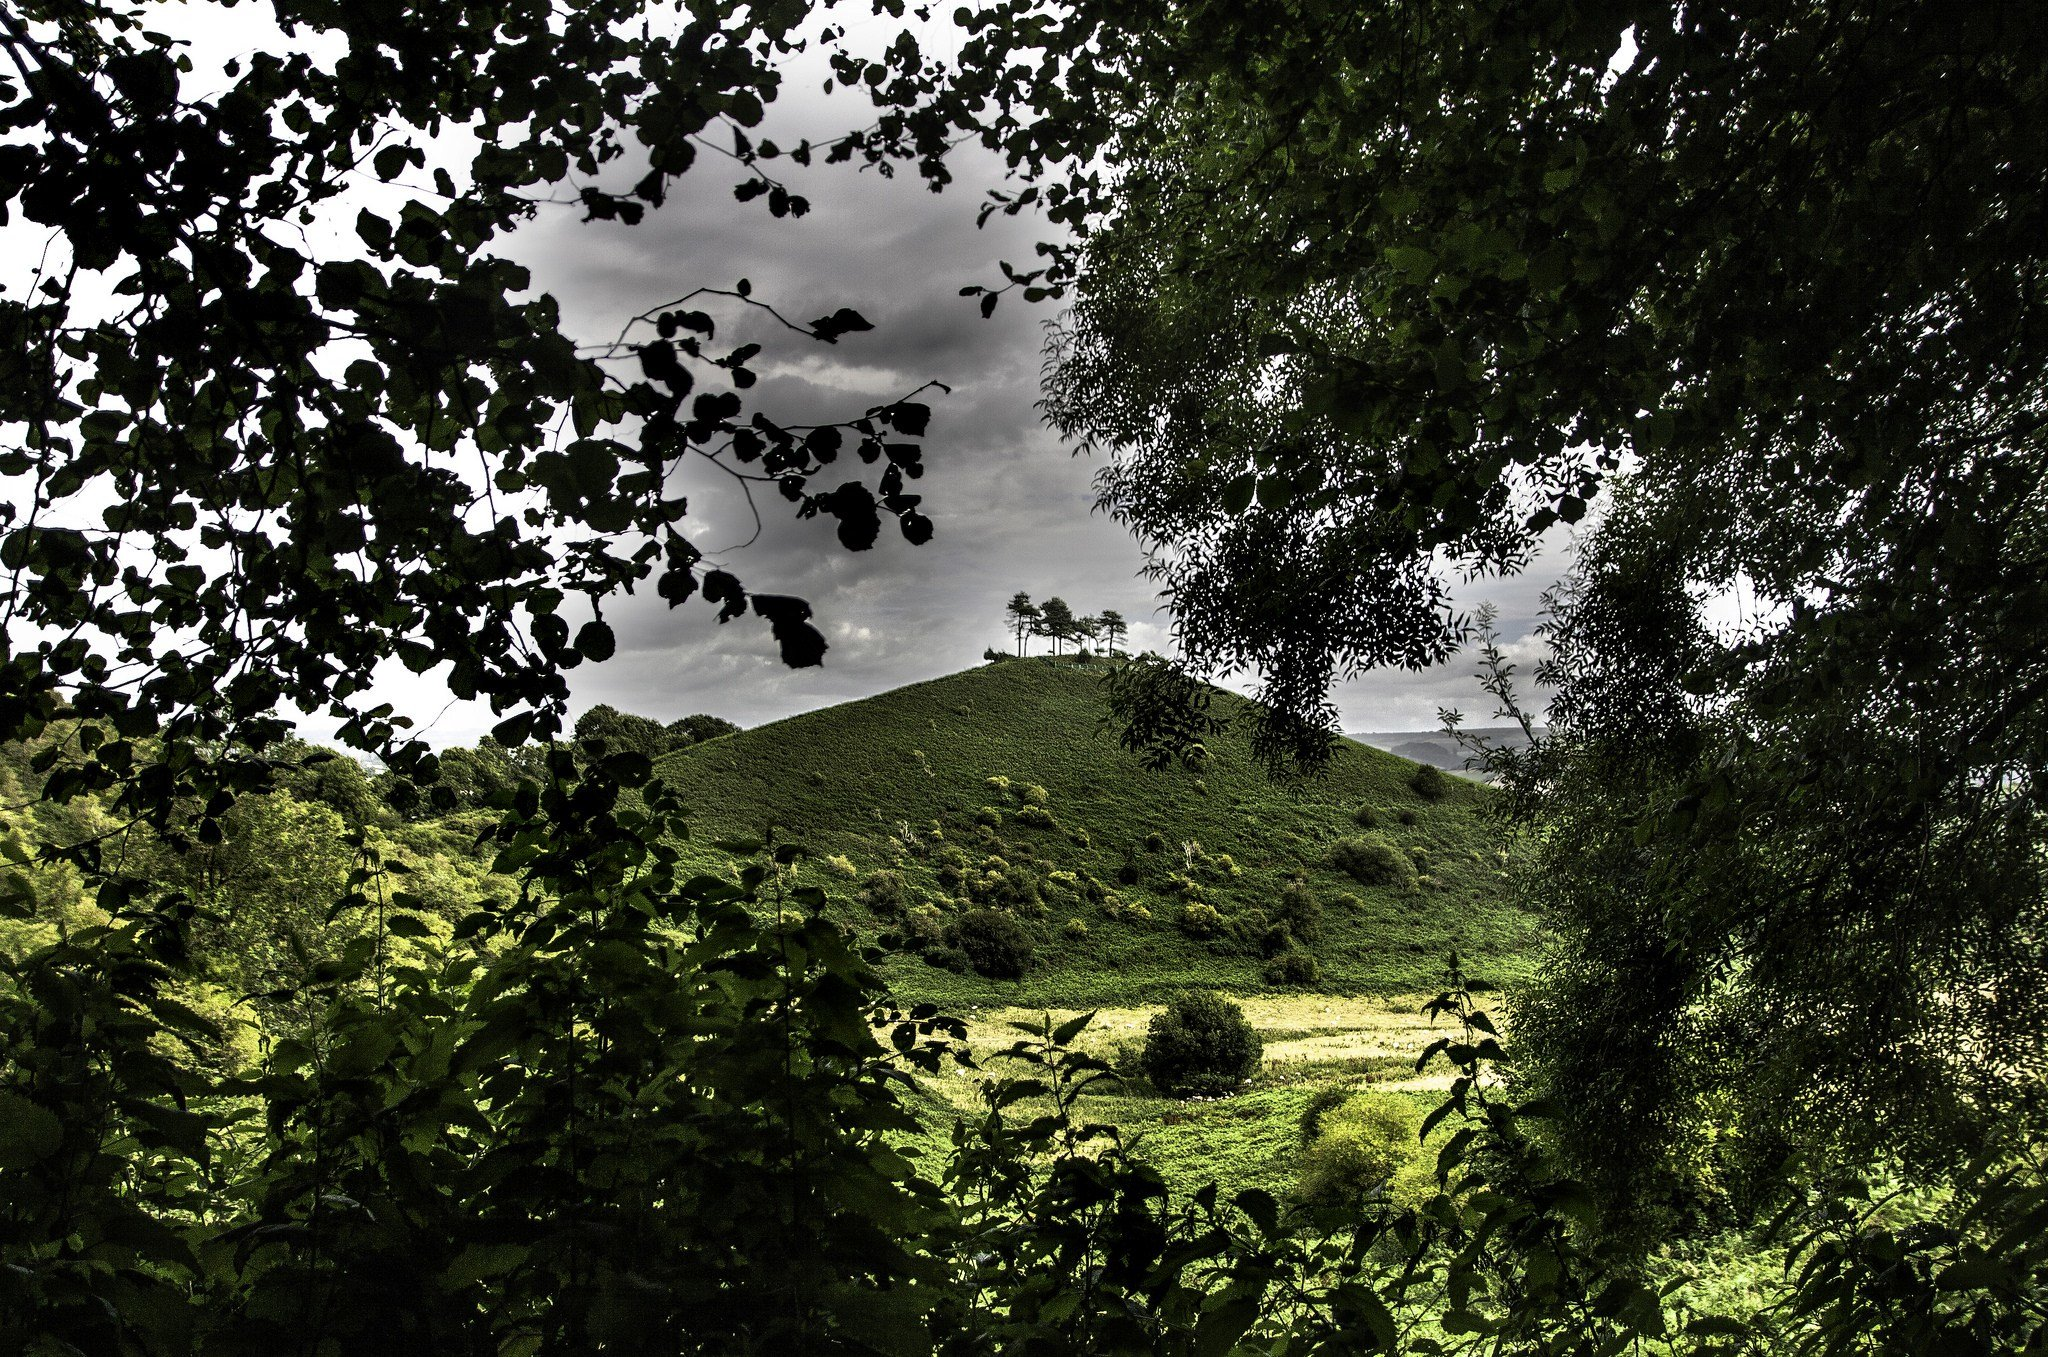 Colmers Hill on the outskirts of Bridport offers scenic views of Wes Dorset